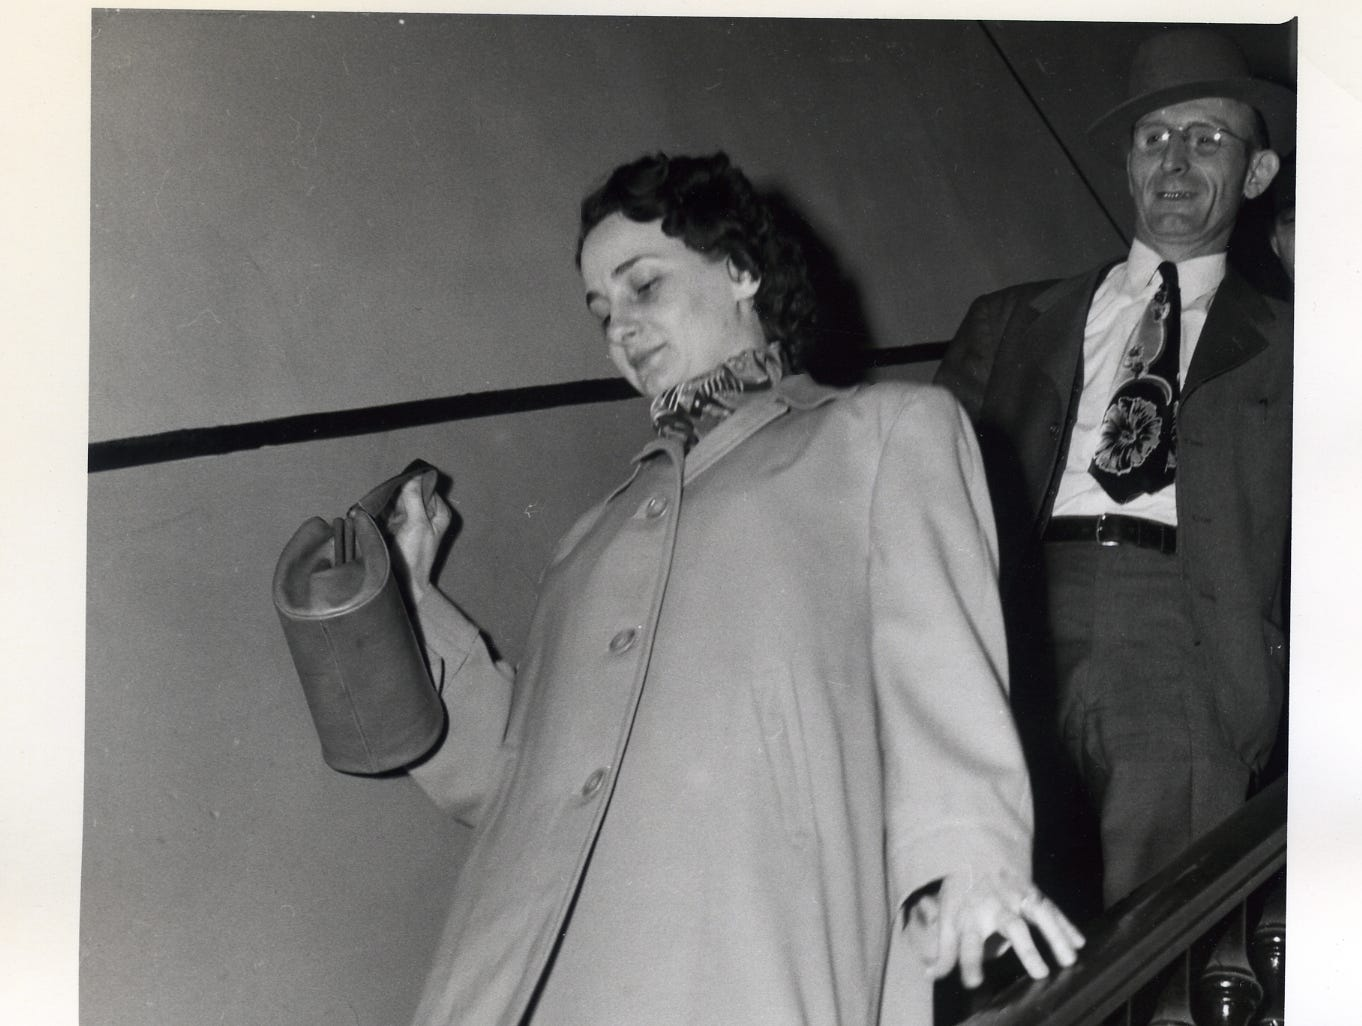 Mrs. Clarice Spurlock who was accused of poisoning her parents in 1949.